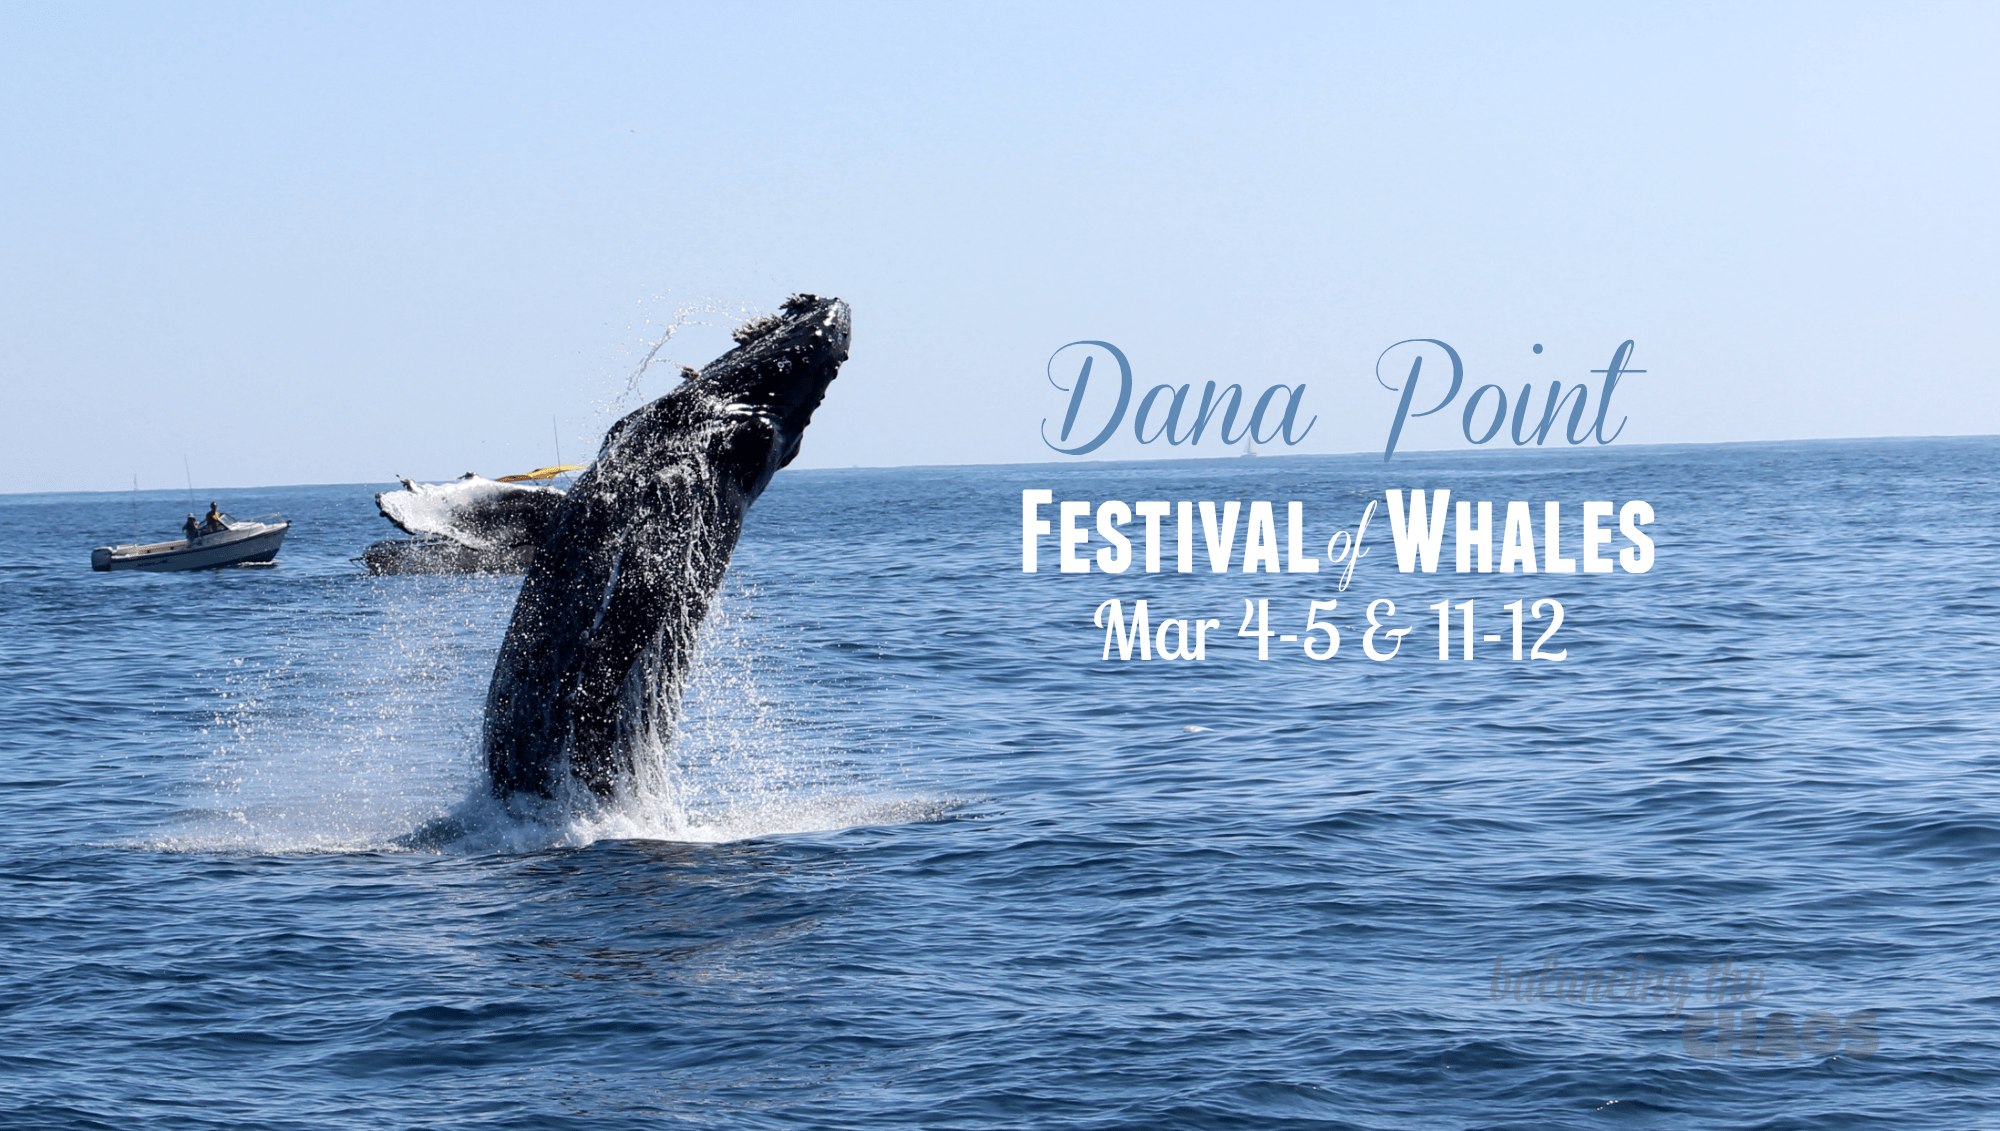 Dana Point Festival of Whales 2017 Whale Watching Dana Whales